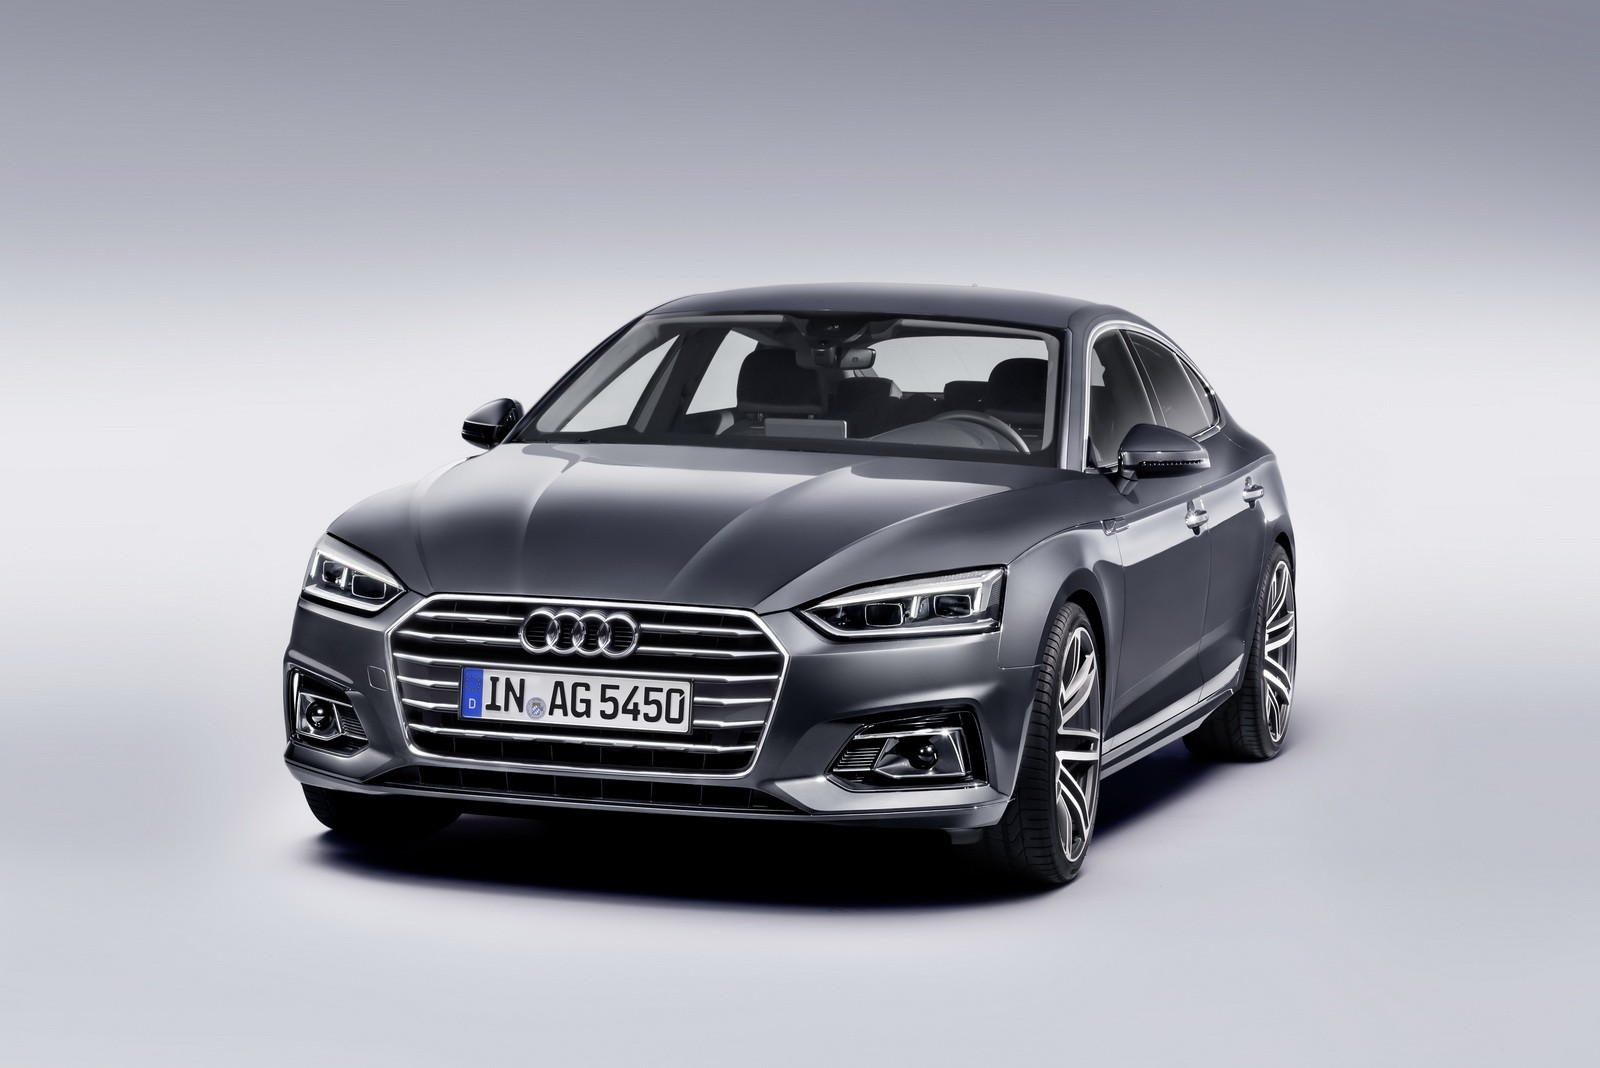 Audi A4 2.0 T Quattro >> Audi A4 Avant and A5 Sportback g-tron Launched, Also Run ...